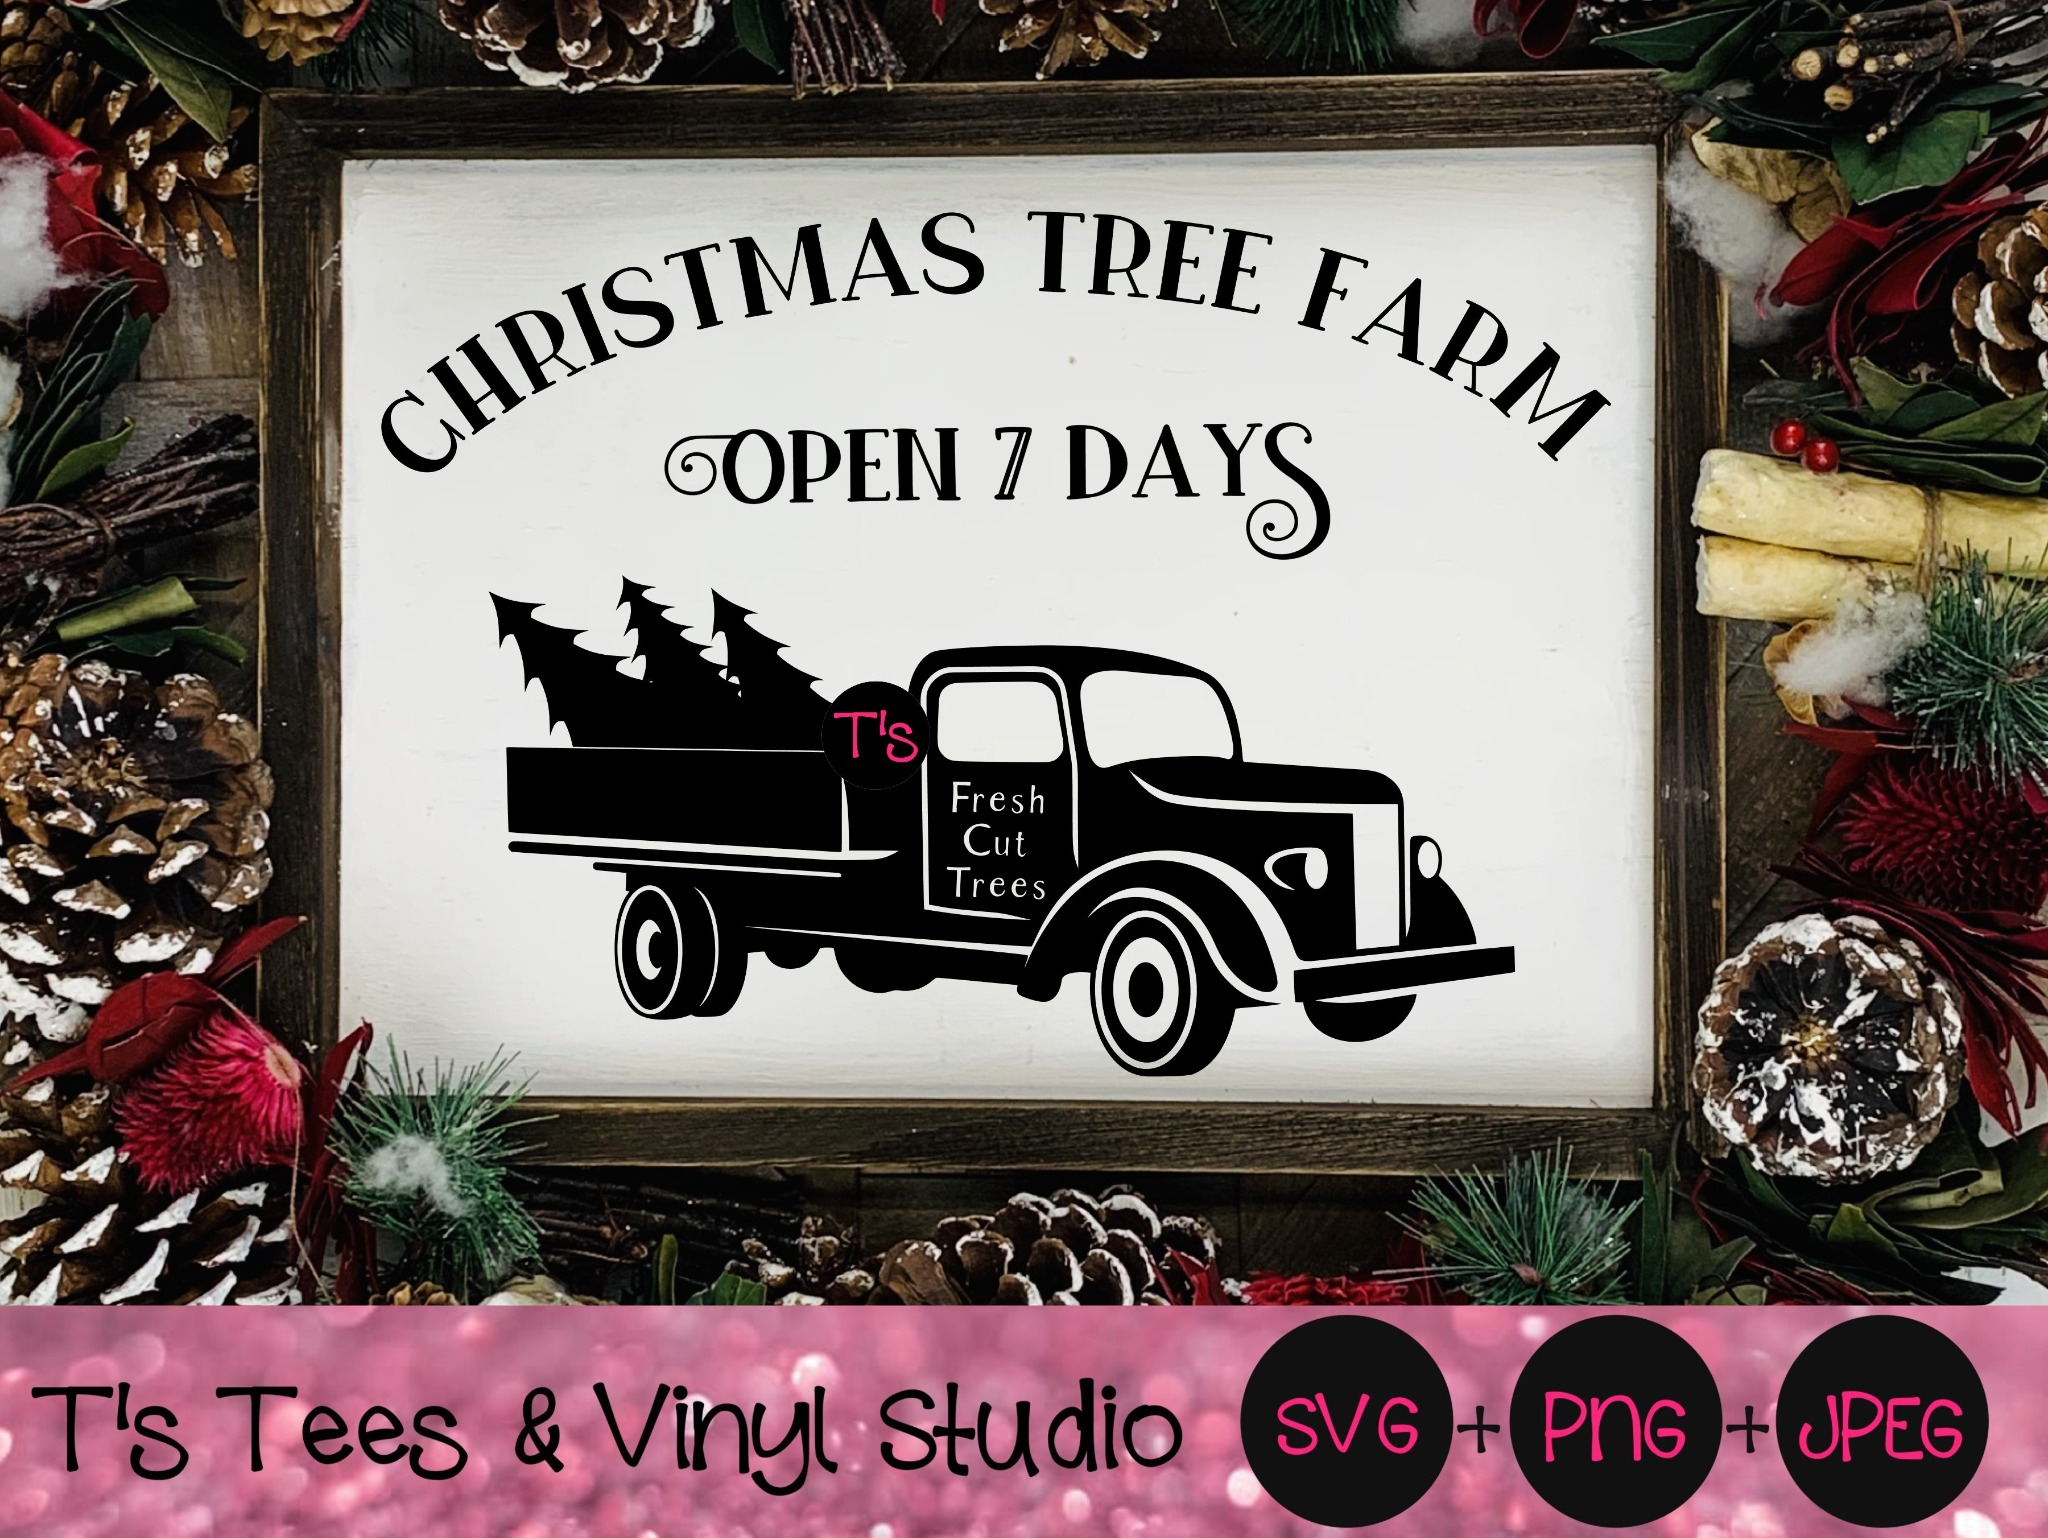 Christmas Tree Farm Svg, Vintage Truck Svg, Merry Christmas Svg, Old Time Christmas, Country Sign